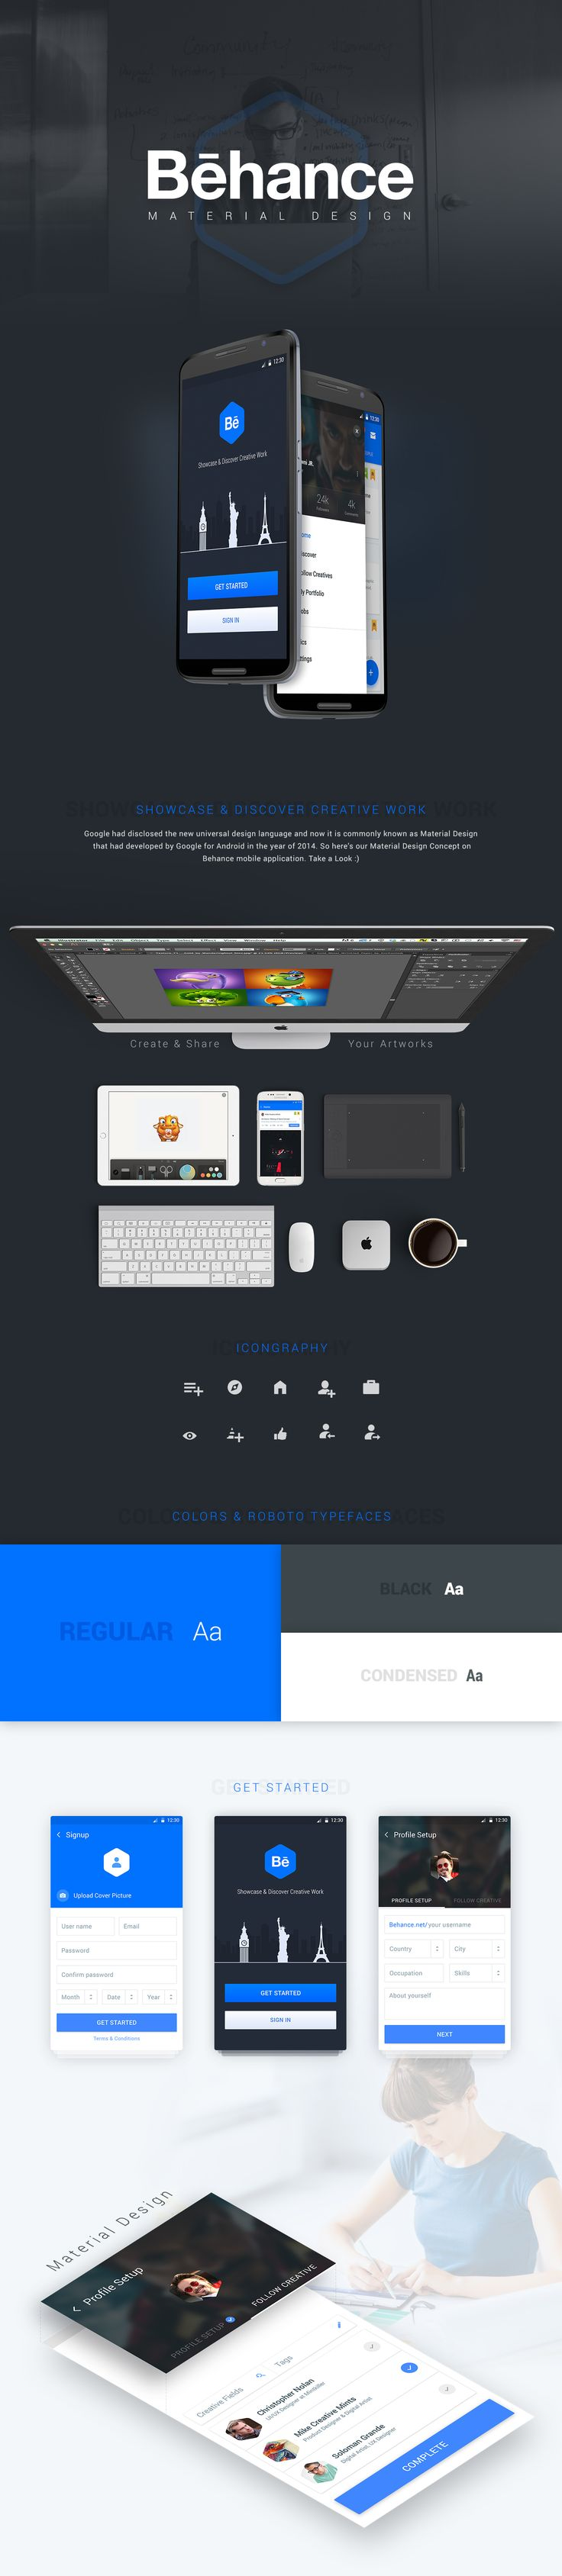 This is our concept work on Behance Material App Redesign.